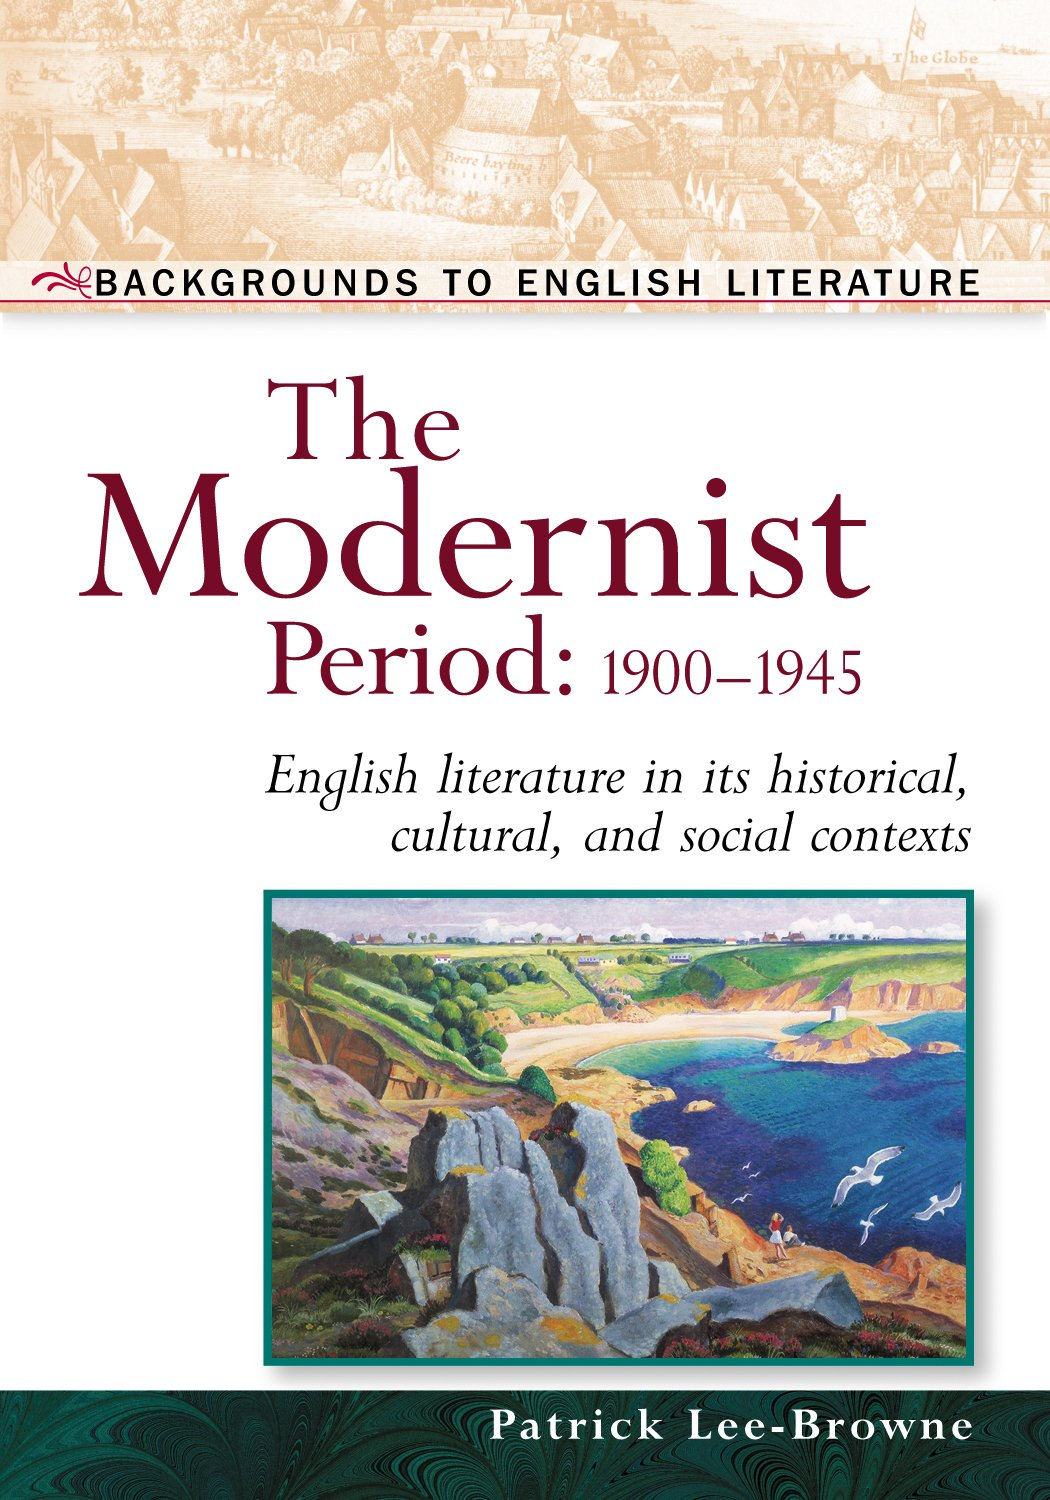 Download The Modernist Period 1900-1945: English Literature in Its Historical, Cultural and Social Contexts (Backgrounds to English  Literature) ebook